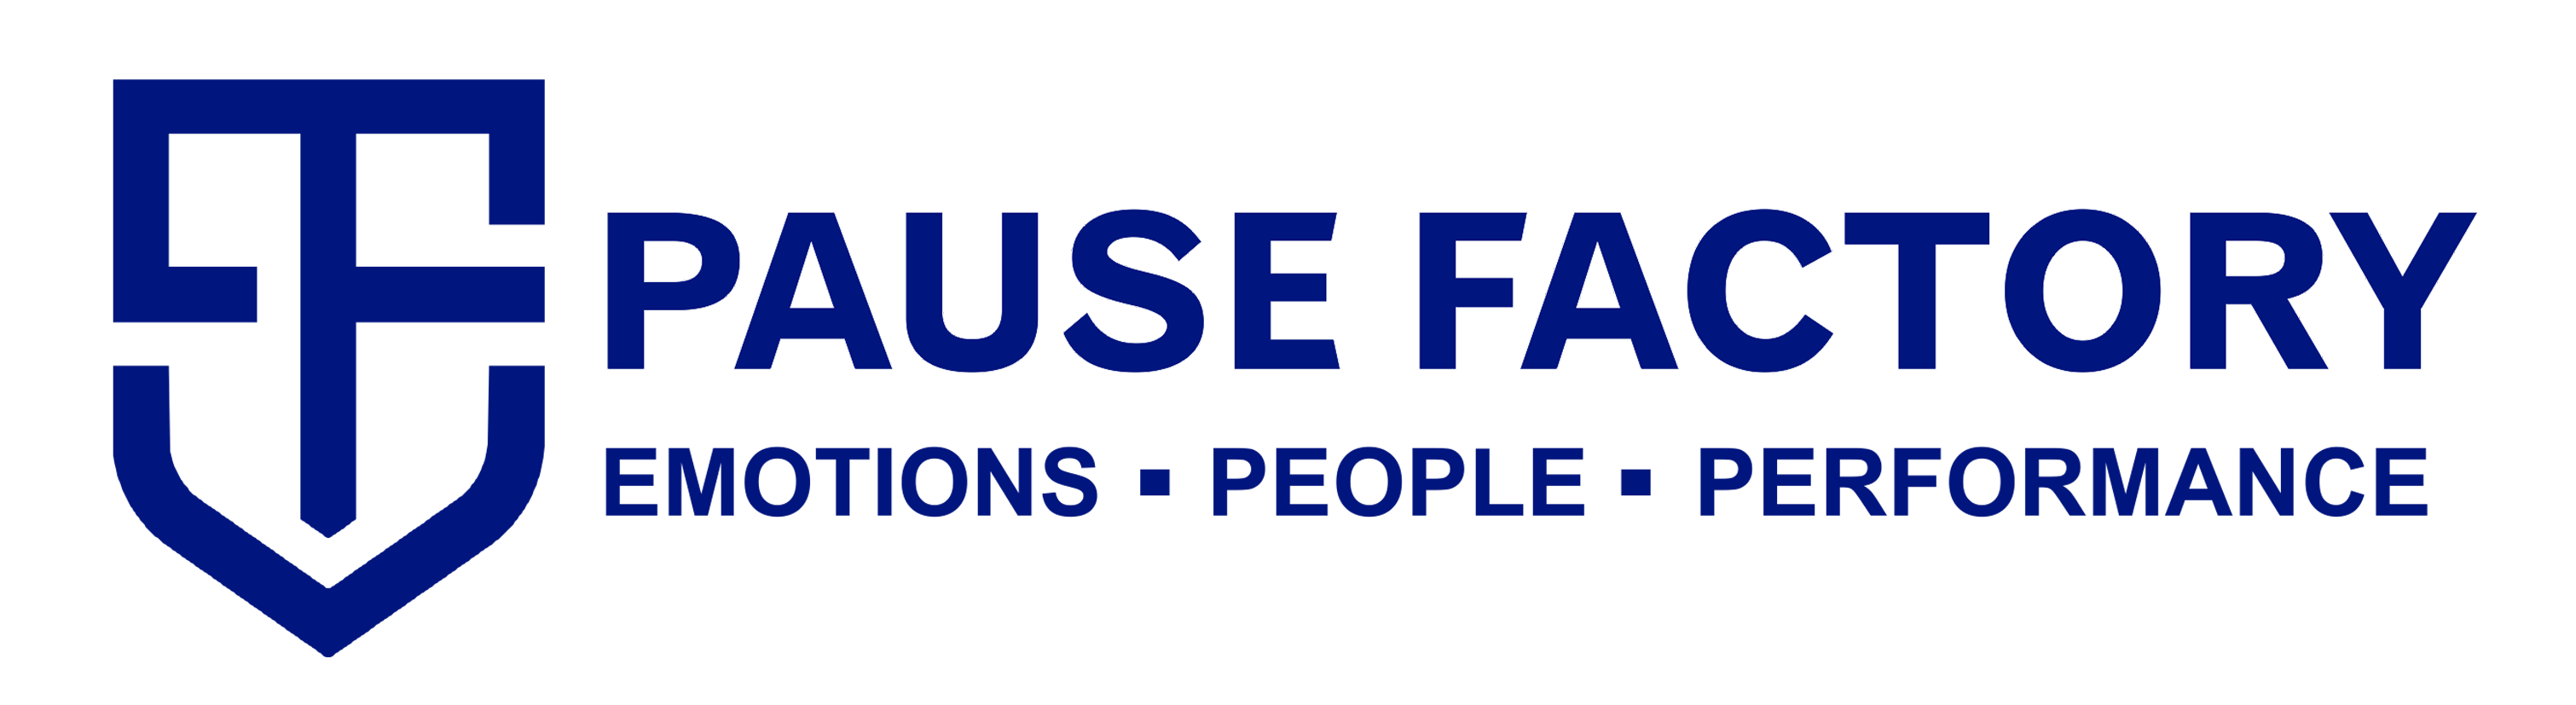 Pause Factory